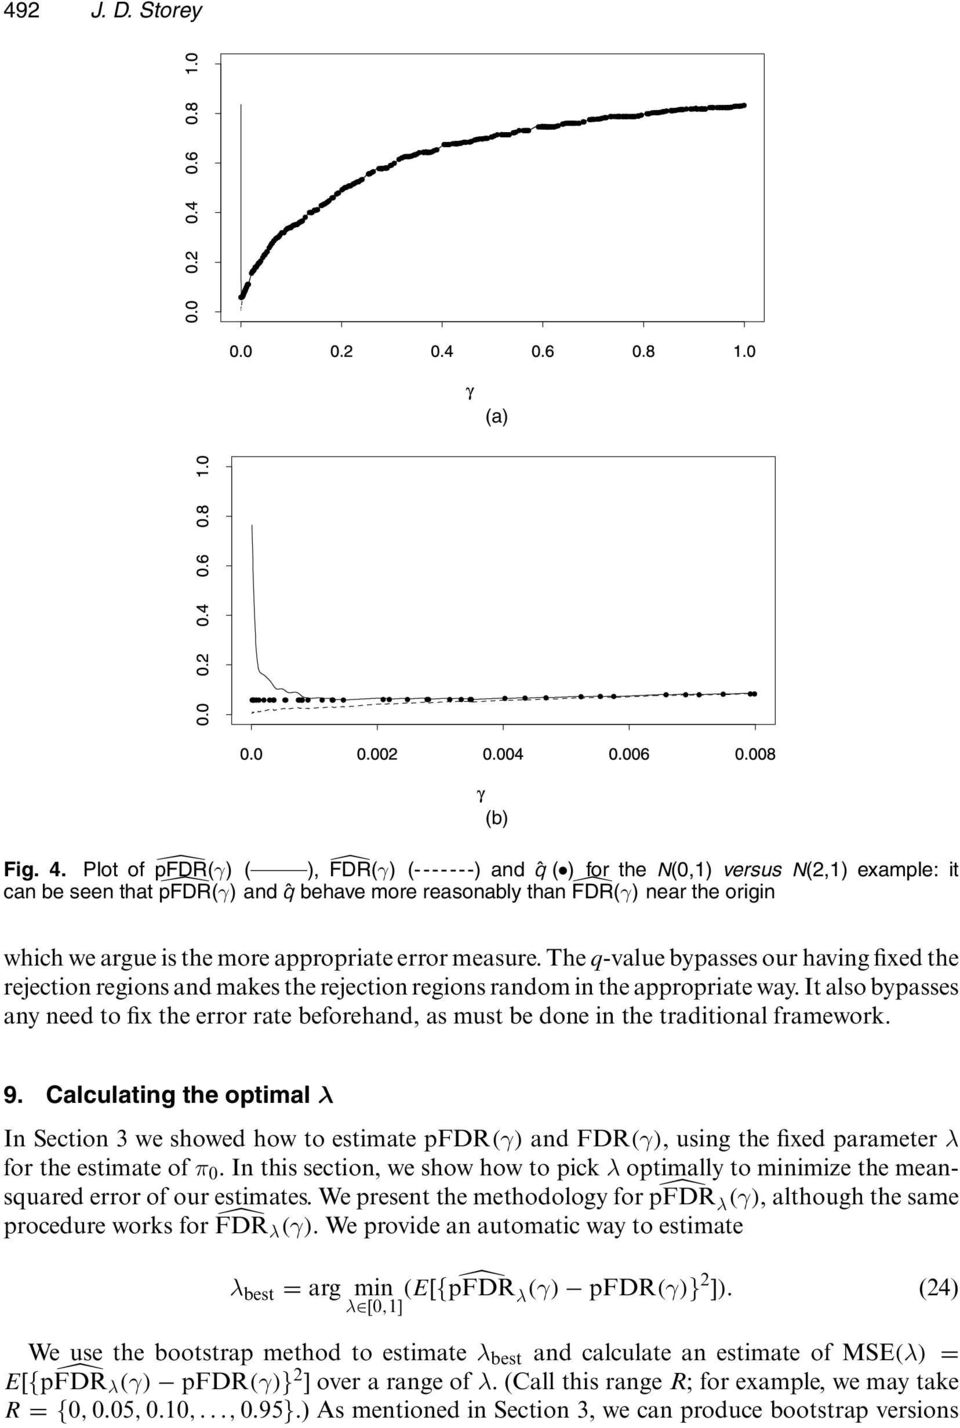 It also bypasses any need to fix the error rate beforehand, as must be done in the traditional framework. 9. Calculating the optimal λ In Section 3 we showed how to estimate pfdr.γ/ and FDR.